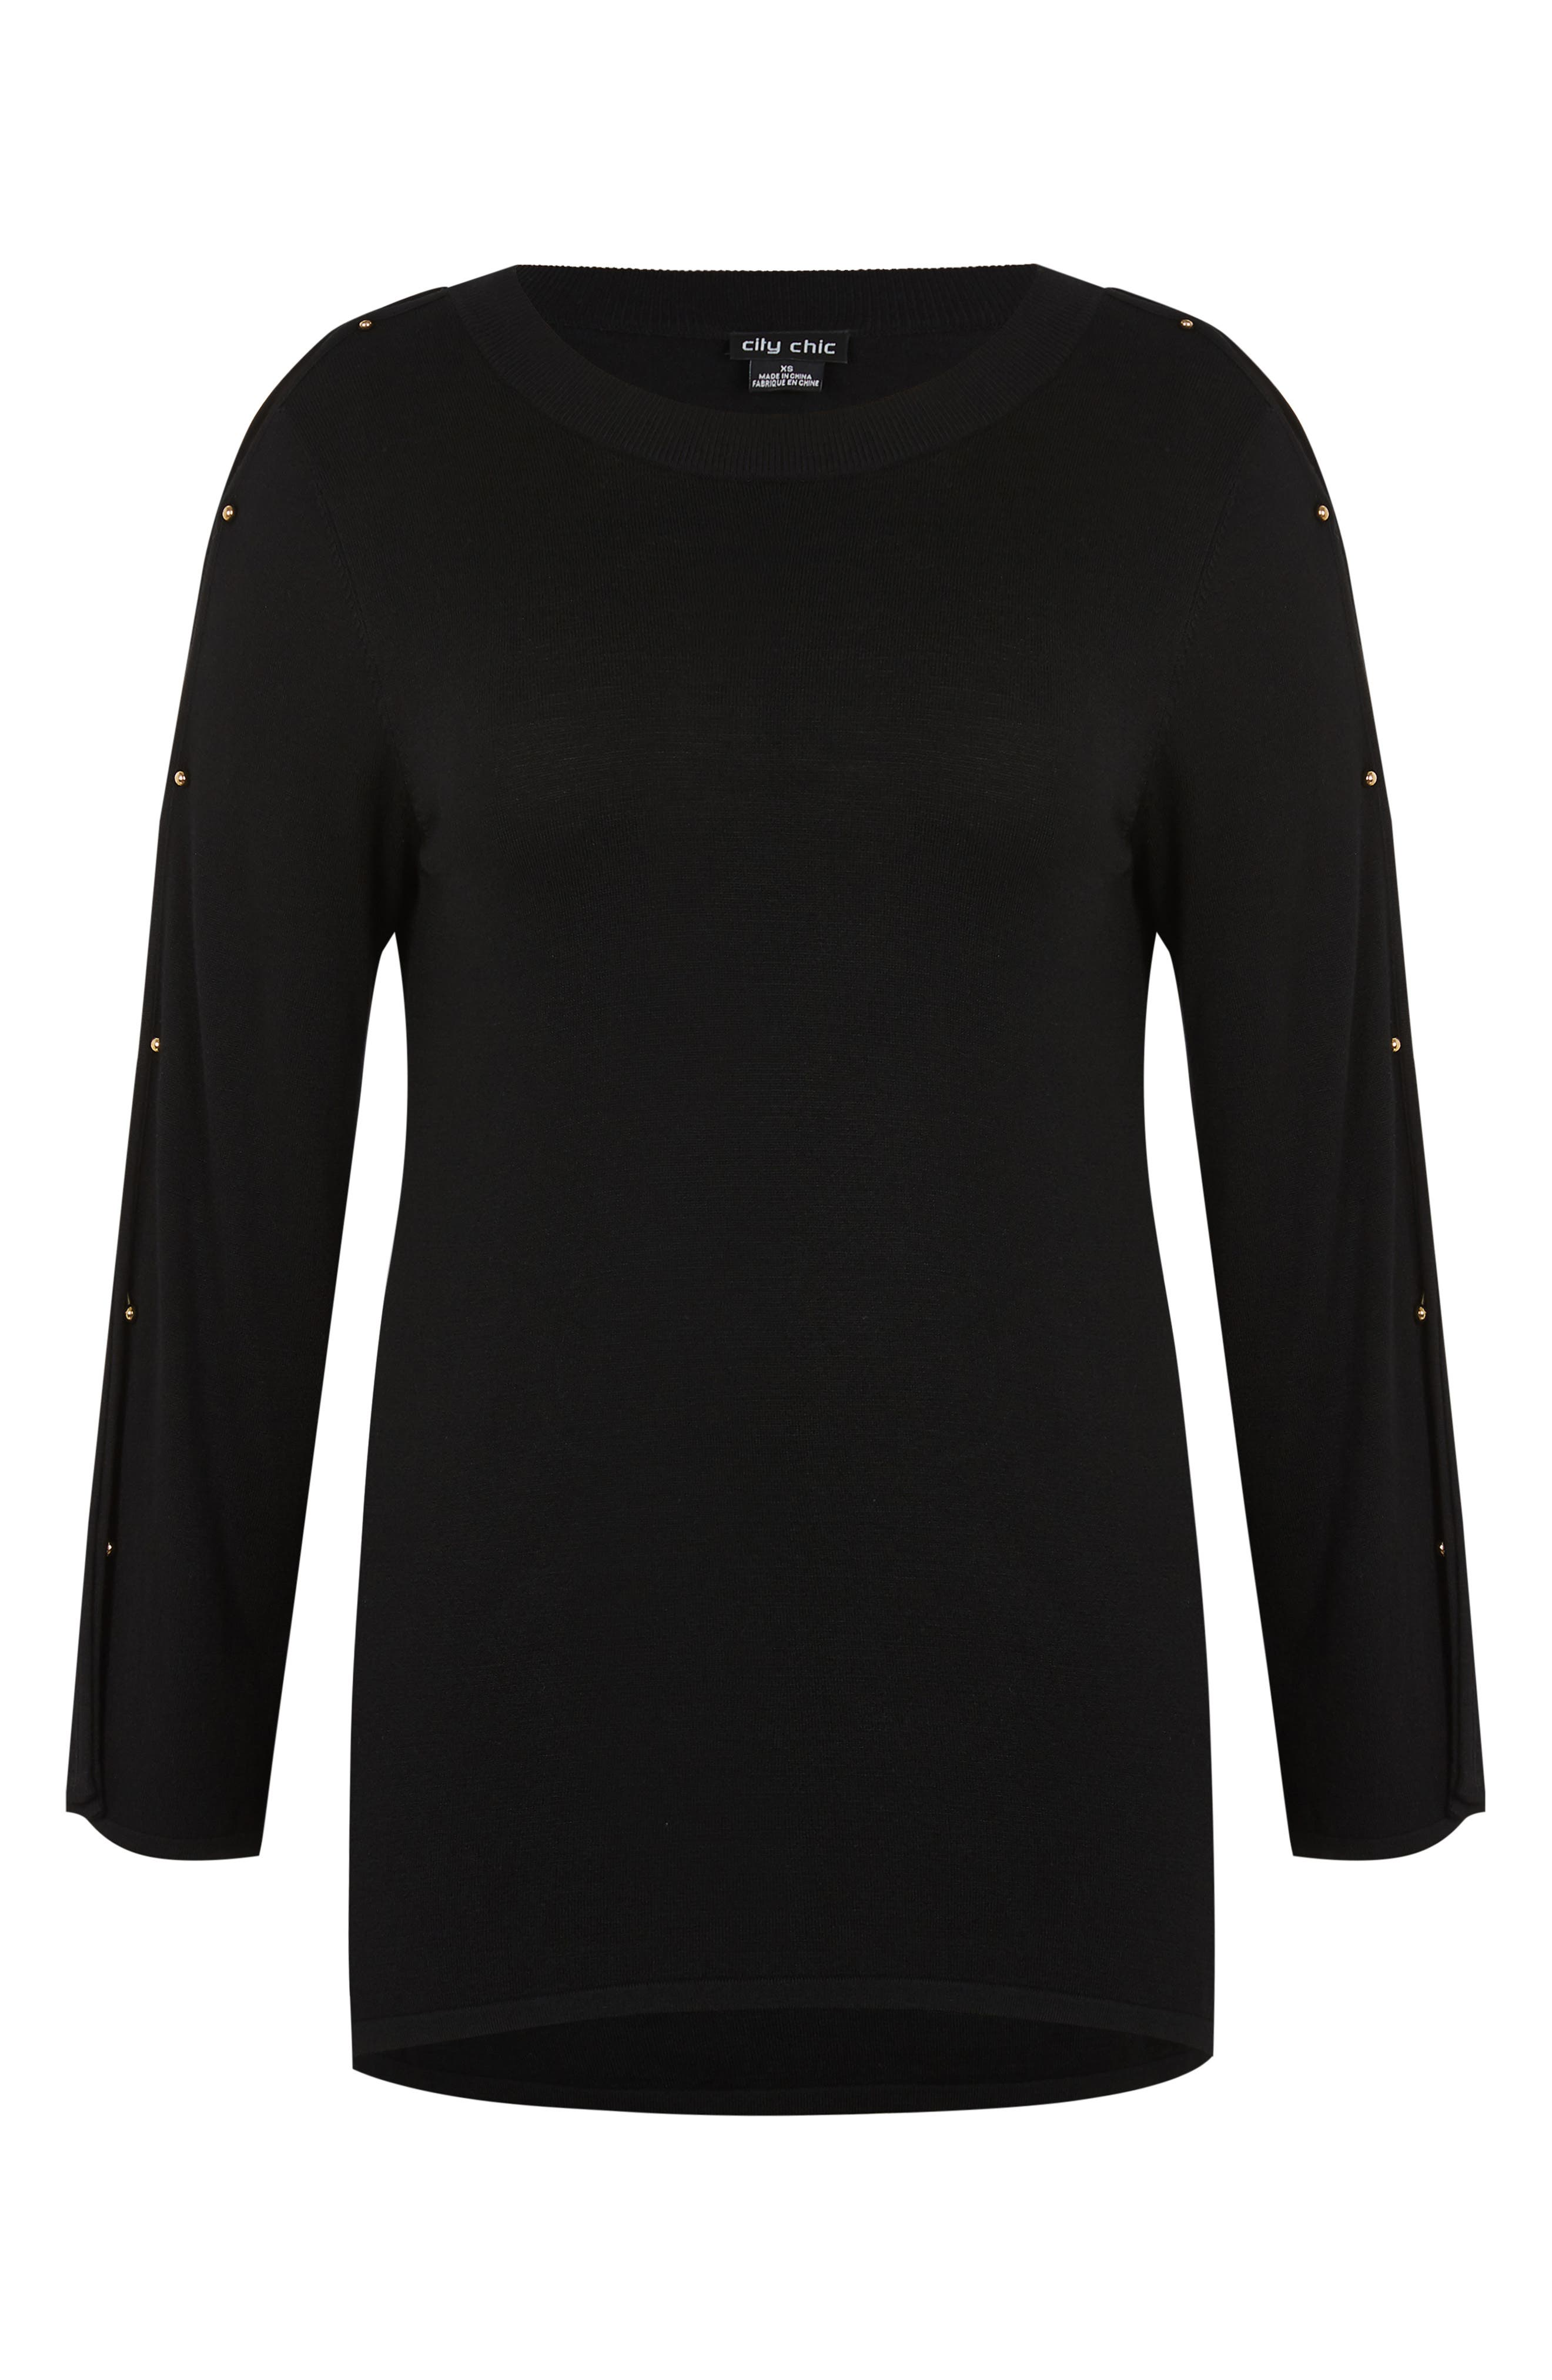 Barbell Sweater,                             Alternate thumbnail 3, color,                             001